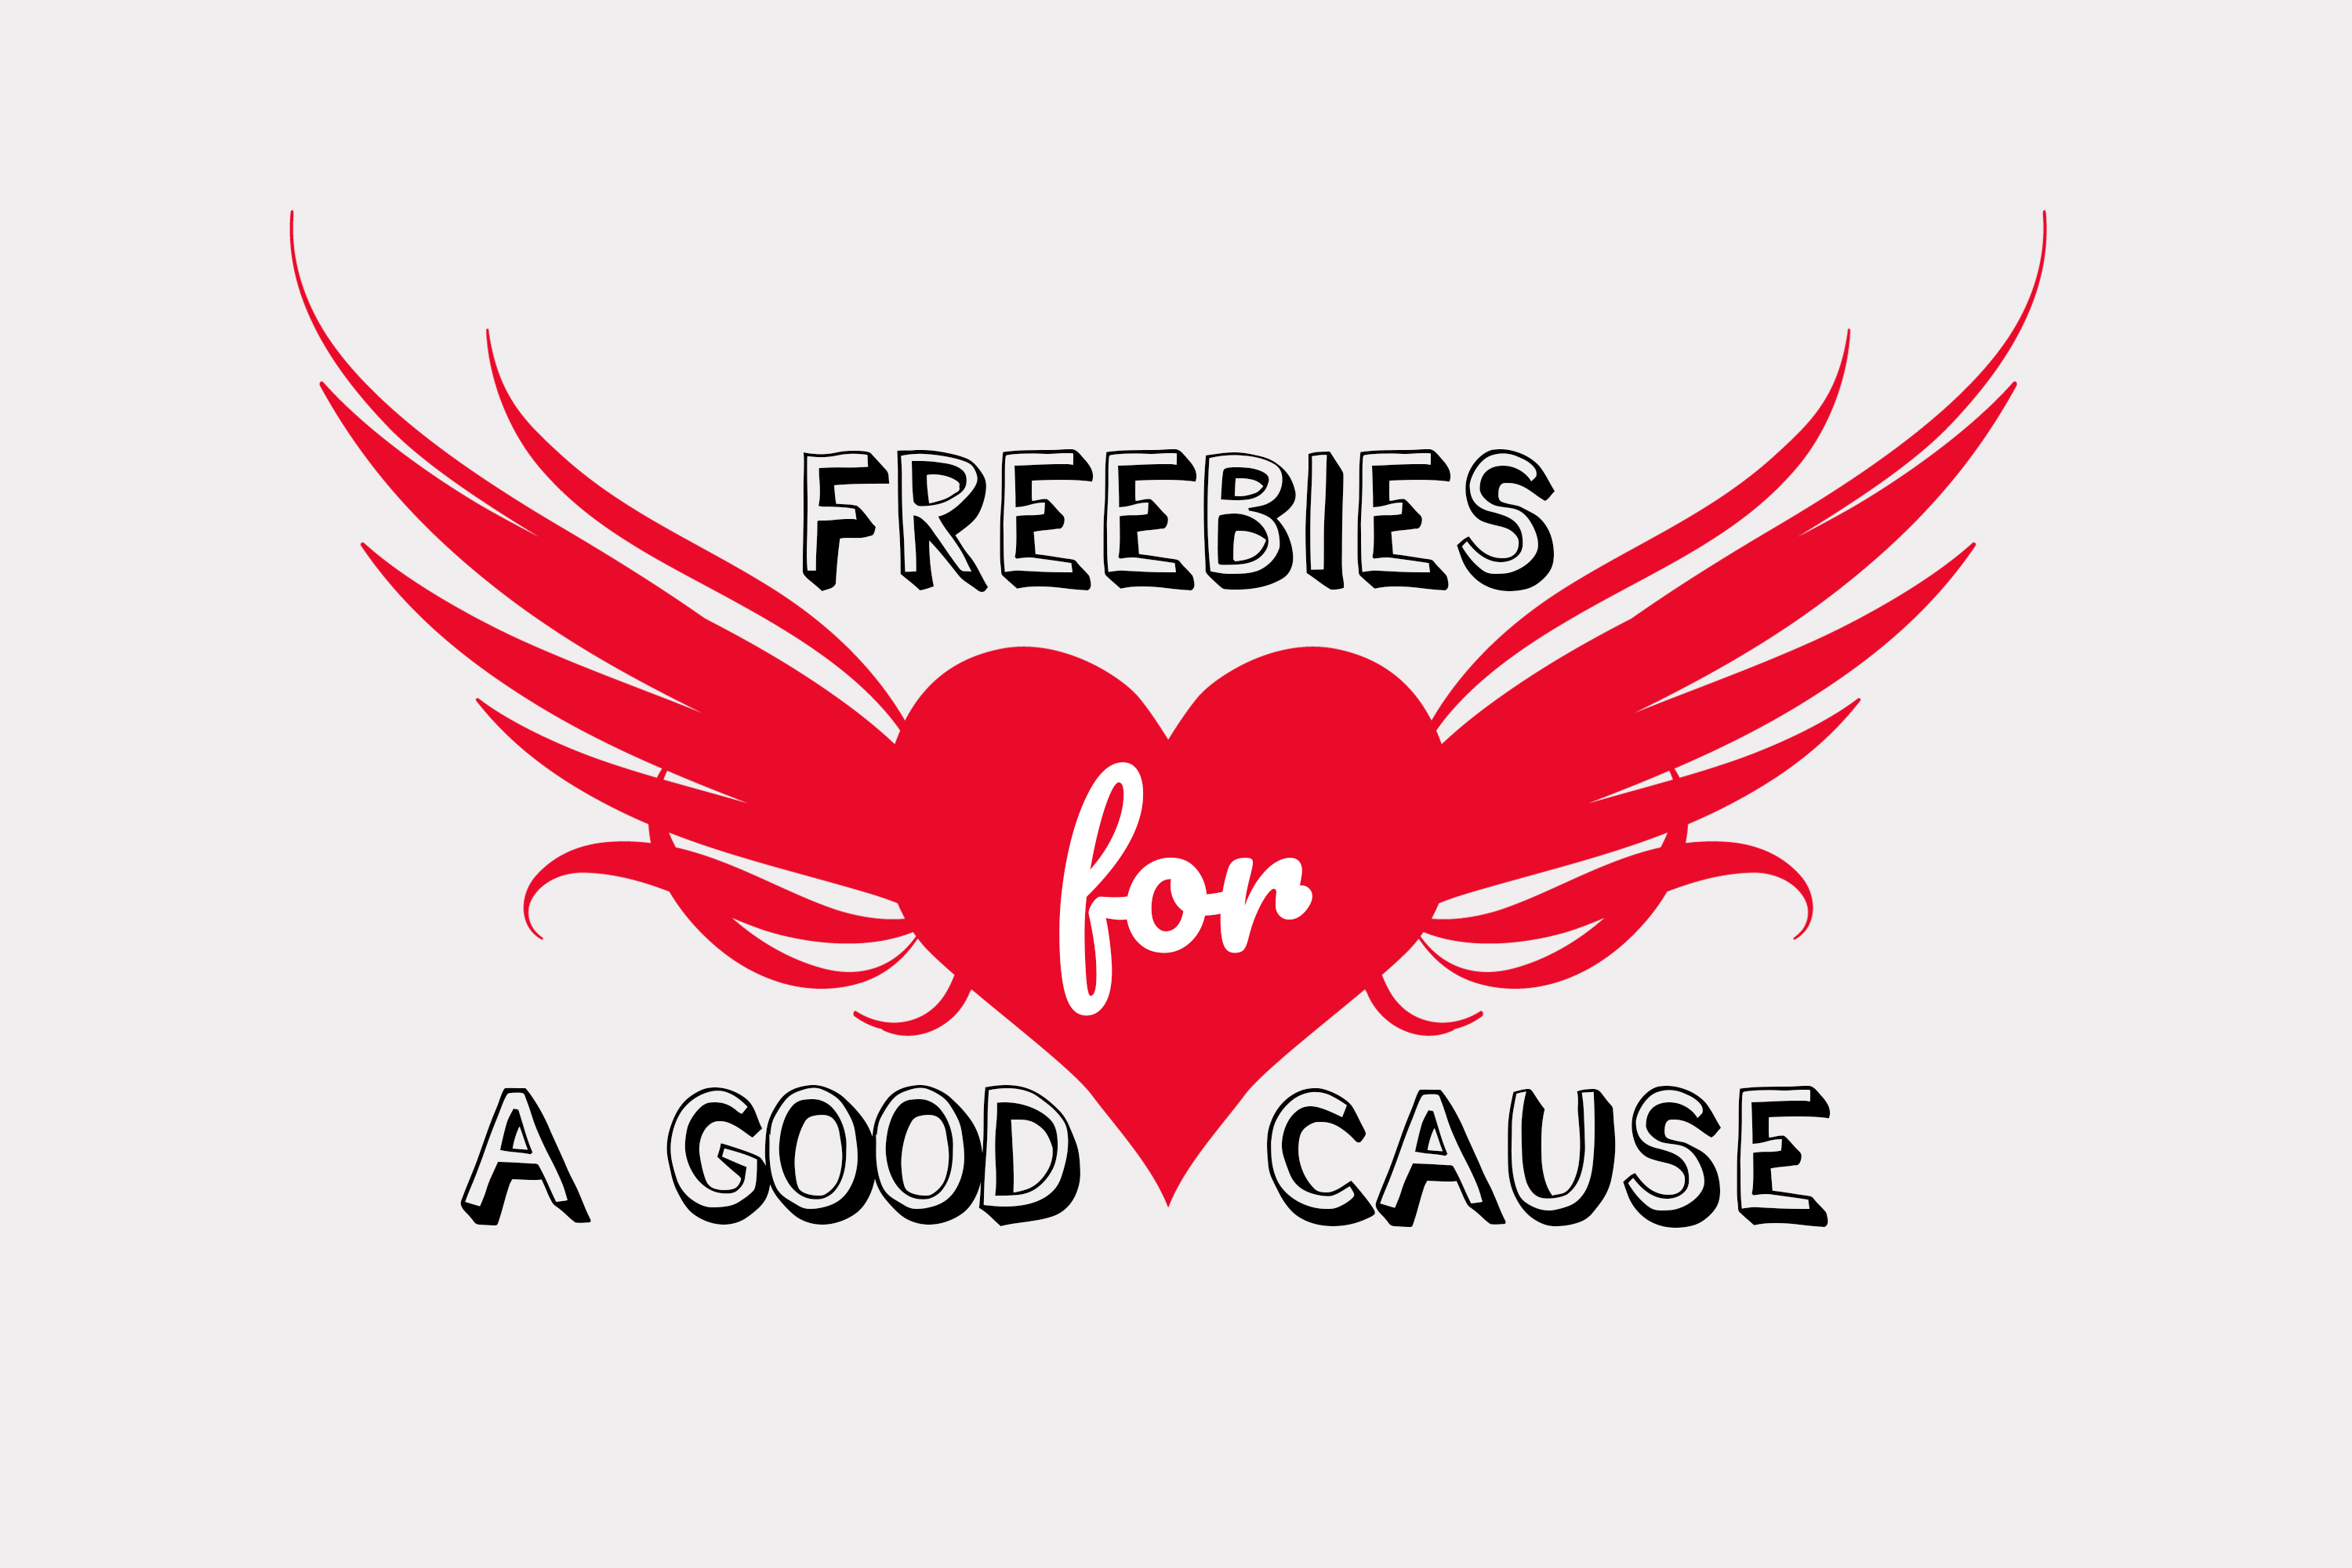 Freebies for a good cause